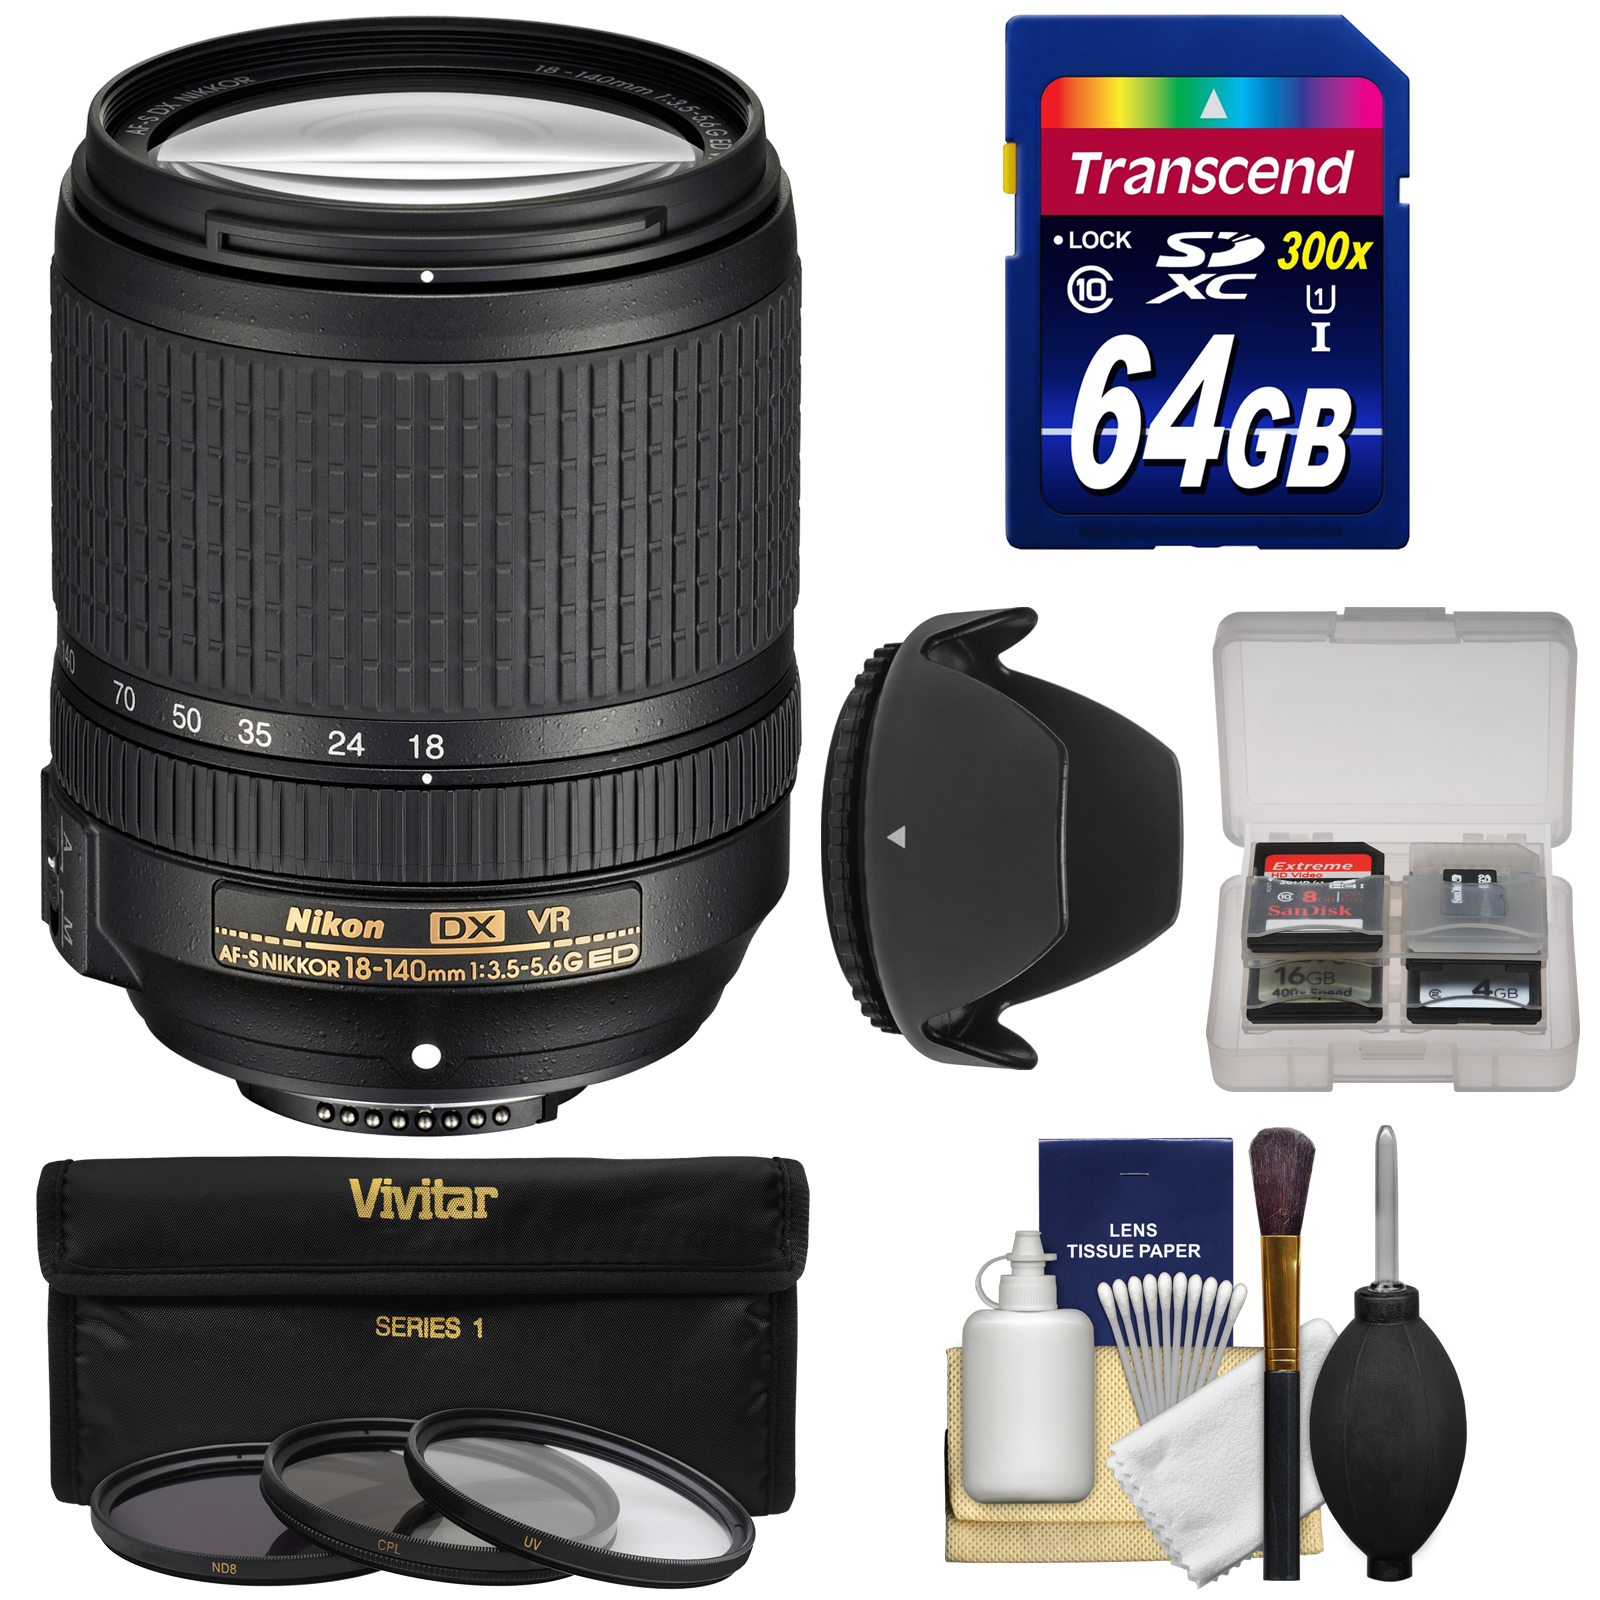 Nikon 18-140mm f/3.5-5.6G VR DX ED AF-S Nikkor-Zoom Lens with 64GB SD Card + 3 Filters + Hood Kit for D3200, D3300, D5300, D5500, D7100, D7200 Cameras